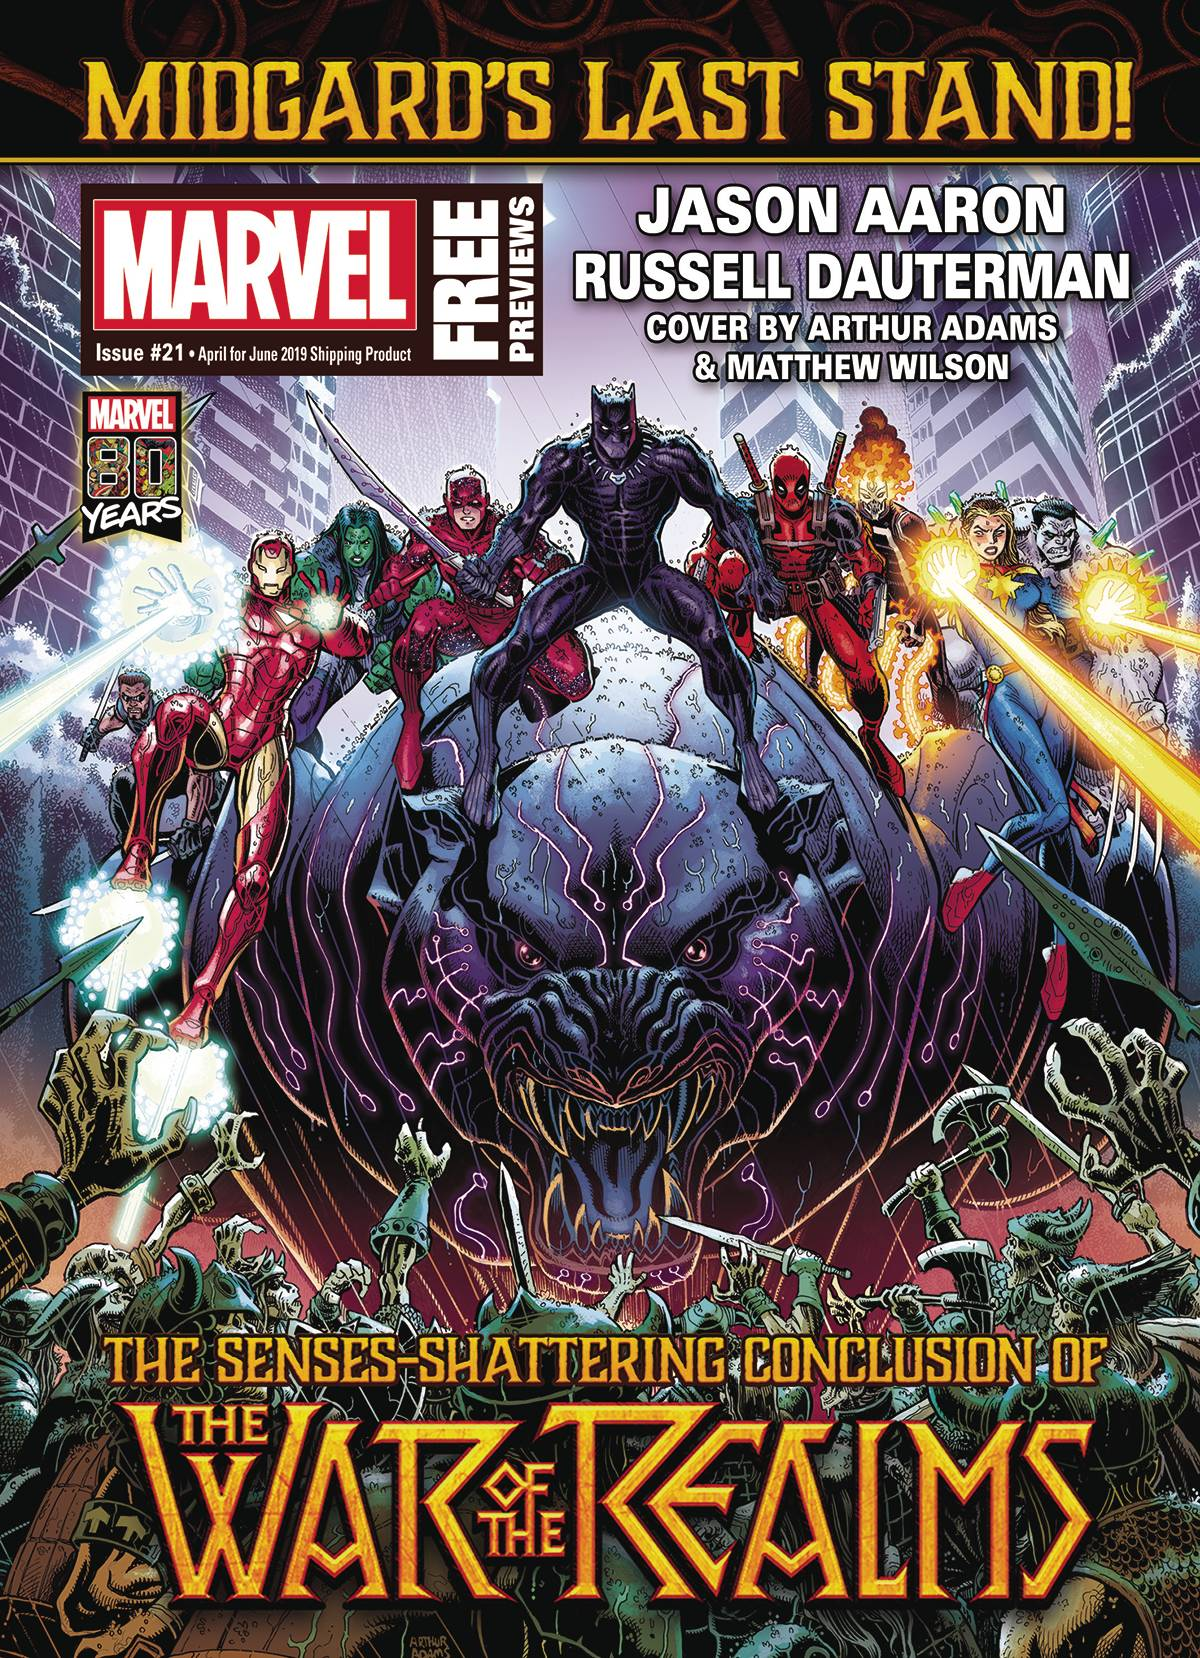 MARVEL PREVIEWS VOL 04 23 JUNE 2019 EXTRAS 191.jpg